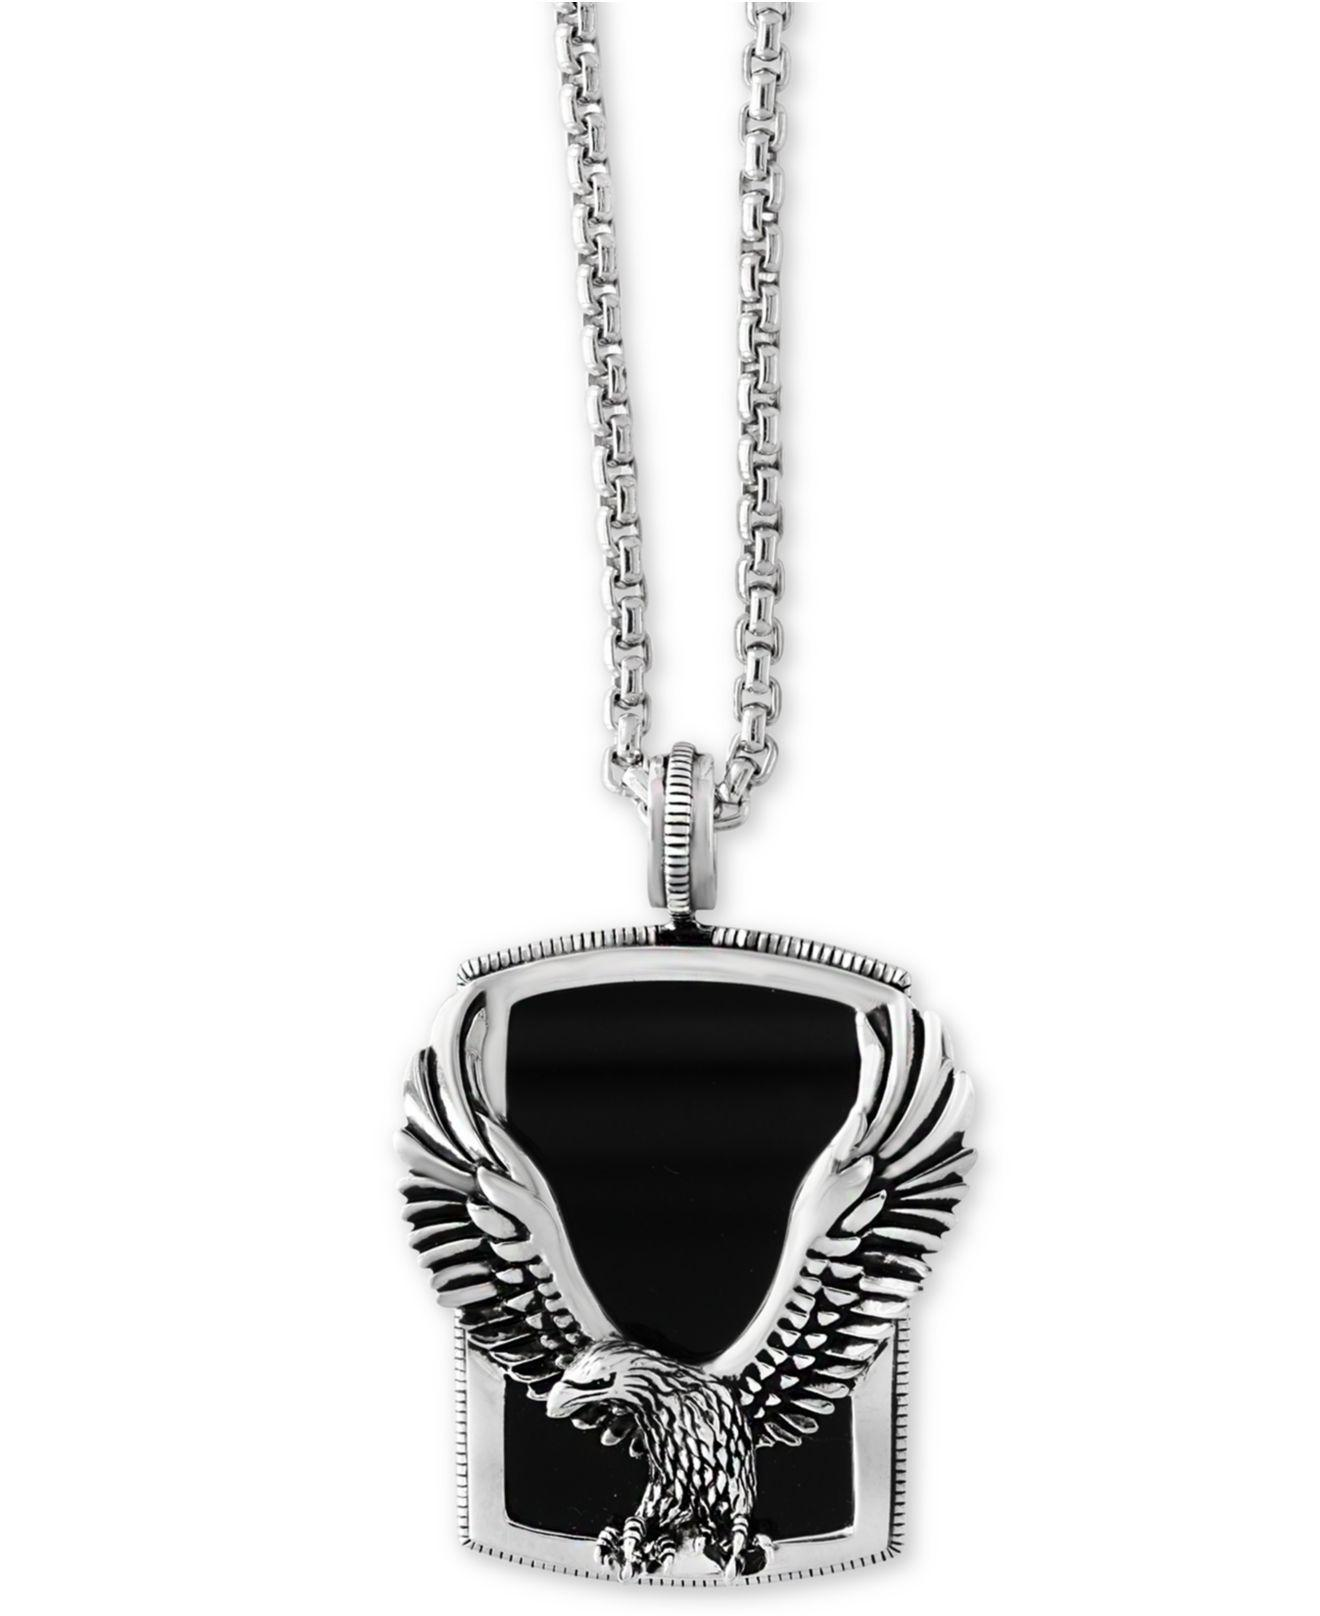 pin eagle necklace tone silver pendant gold blackjack